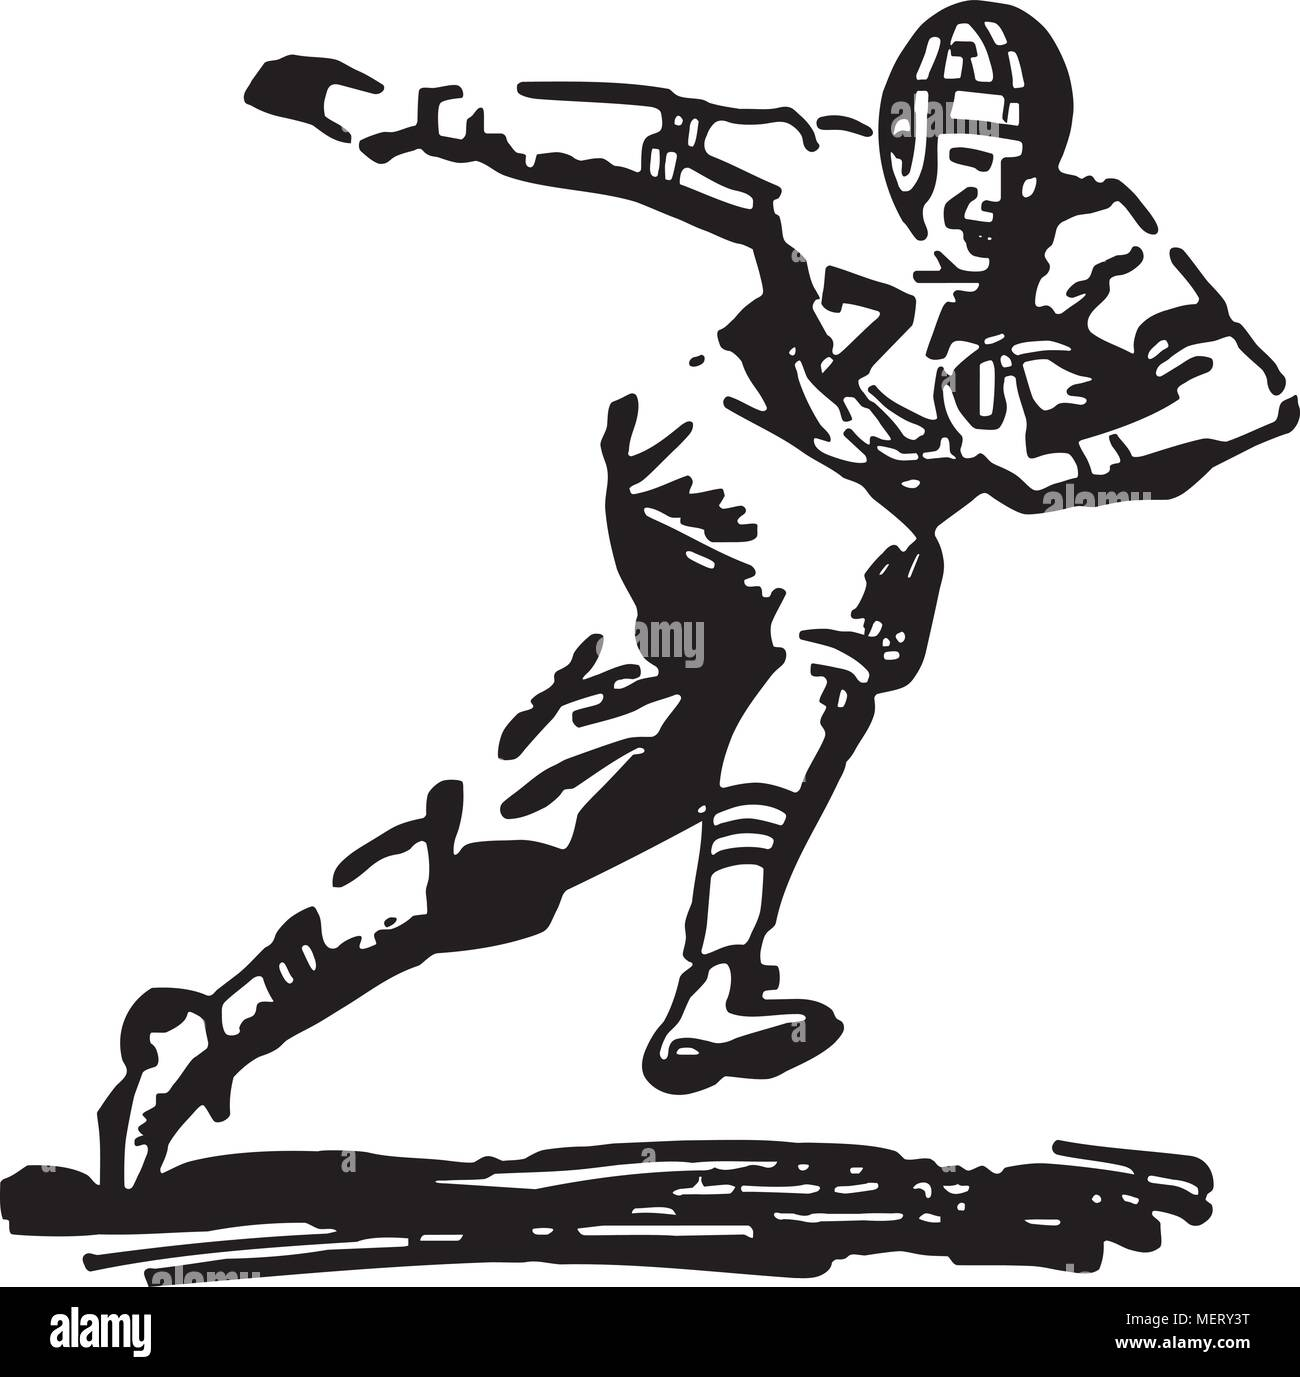 hight resolution of football player running with ball retro clipart illustration